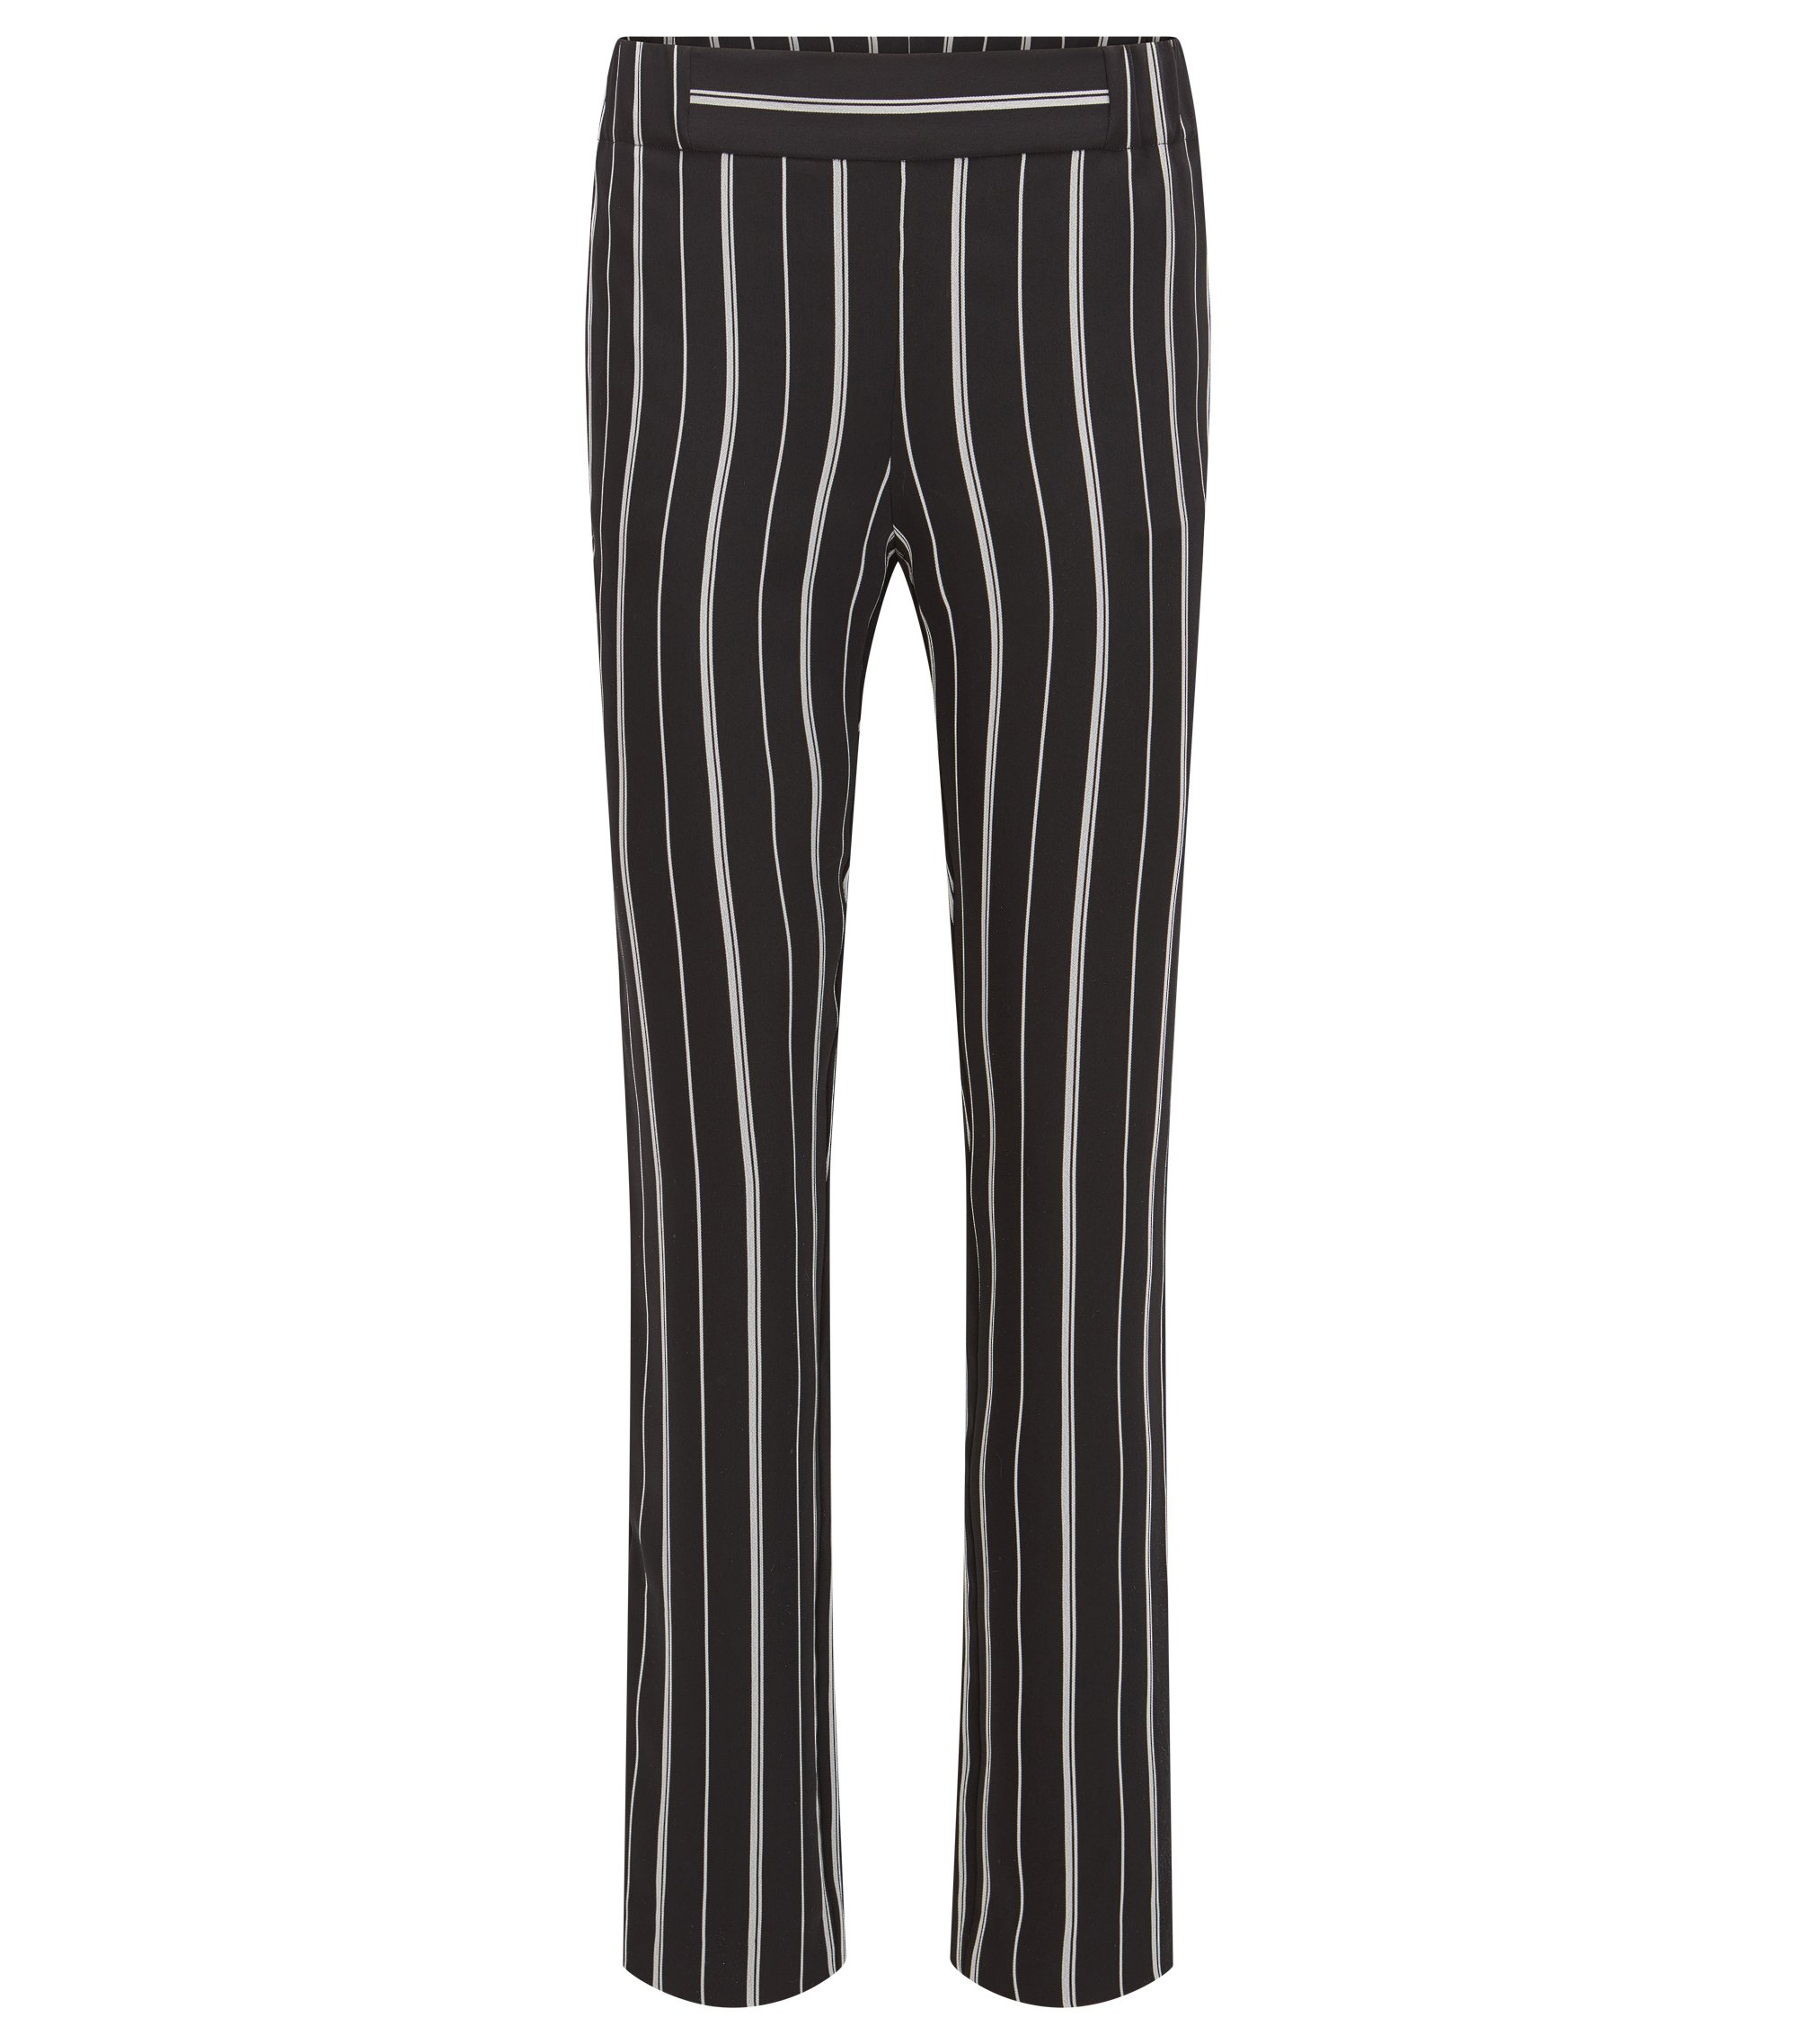 Striped jersey trousers in a regular fit, Patterned